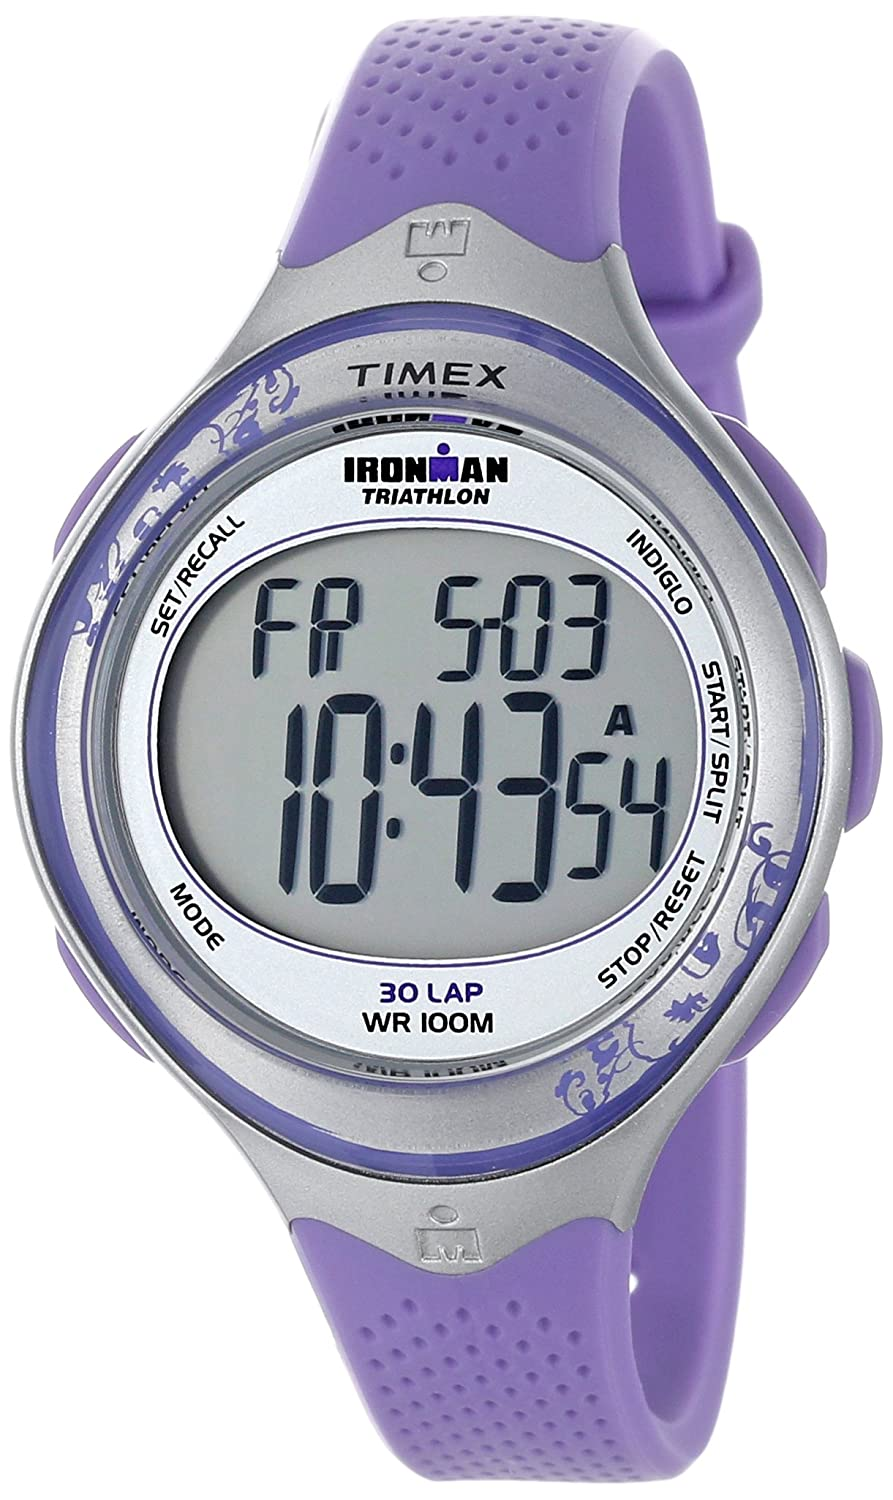 380092b43 Amazon.com: Timex Women's T5K602 Ironman Classic 30 Mid-Size  Blue/Silver-Tone Resin Strap Watch: Timex: Watches